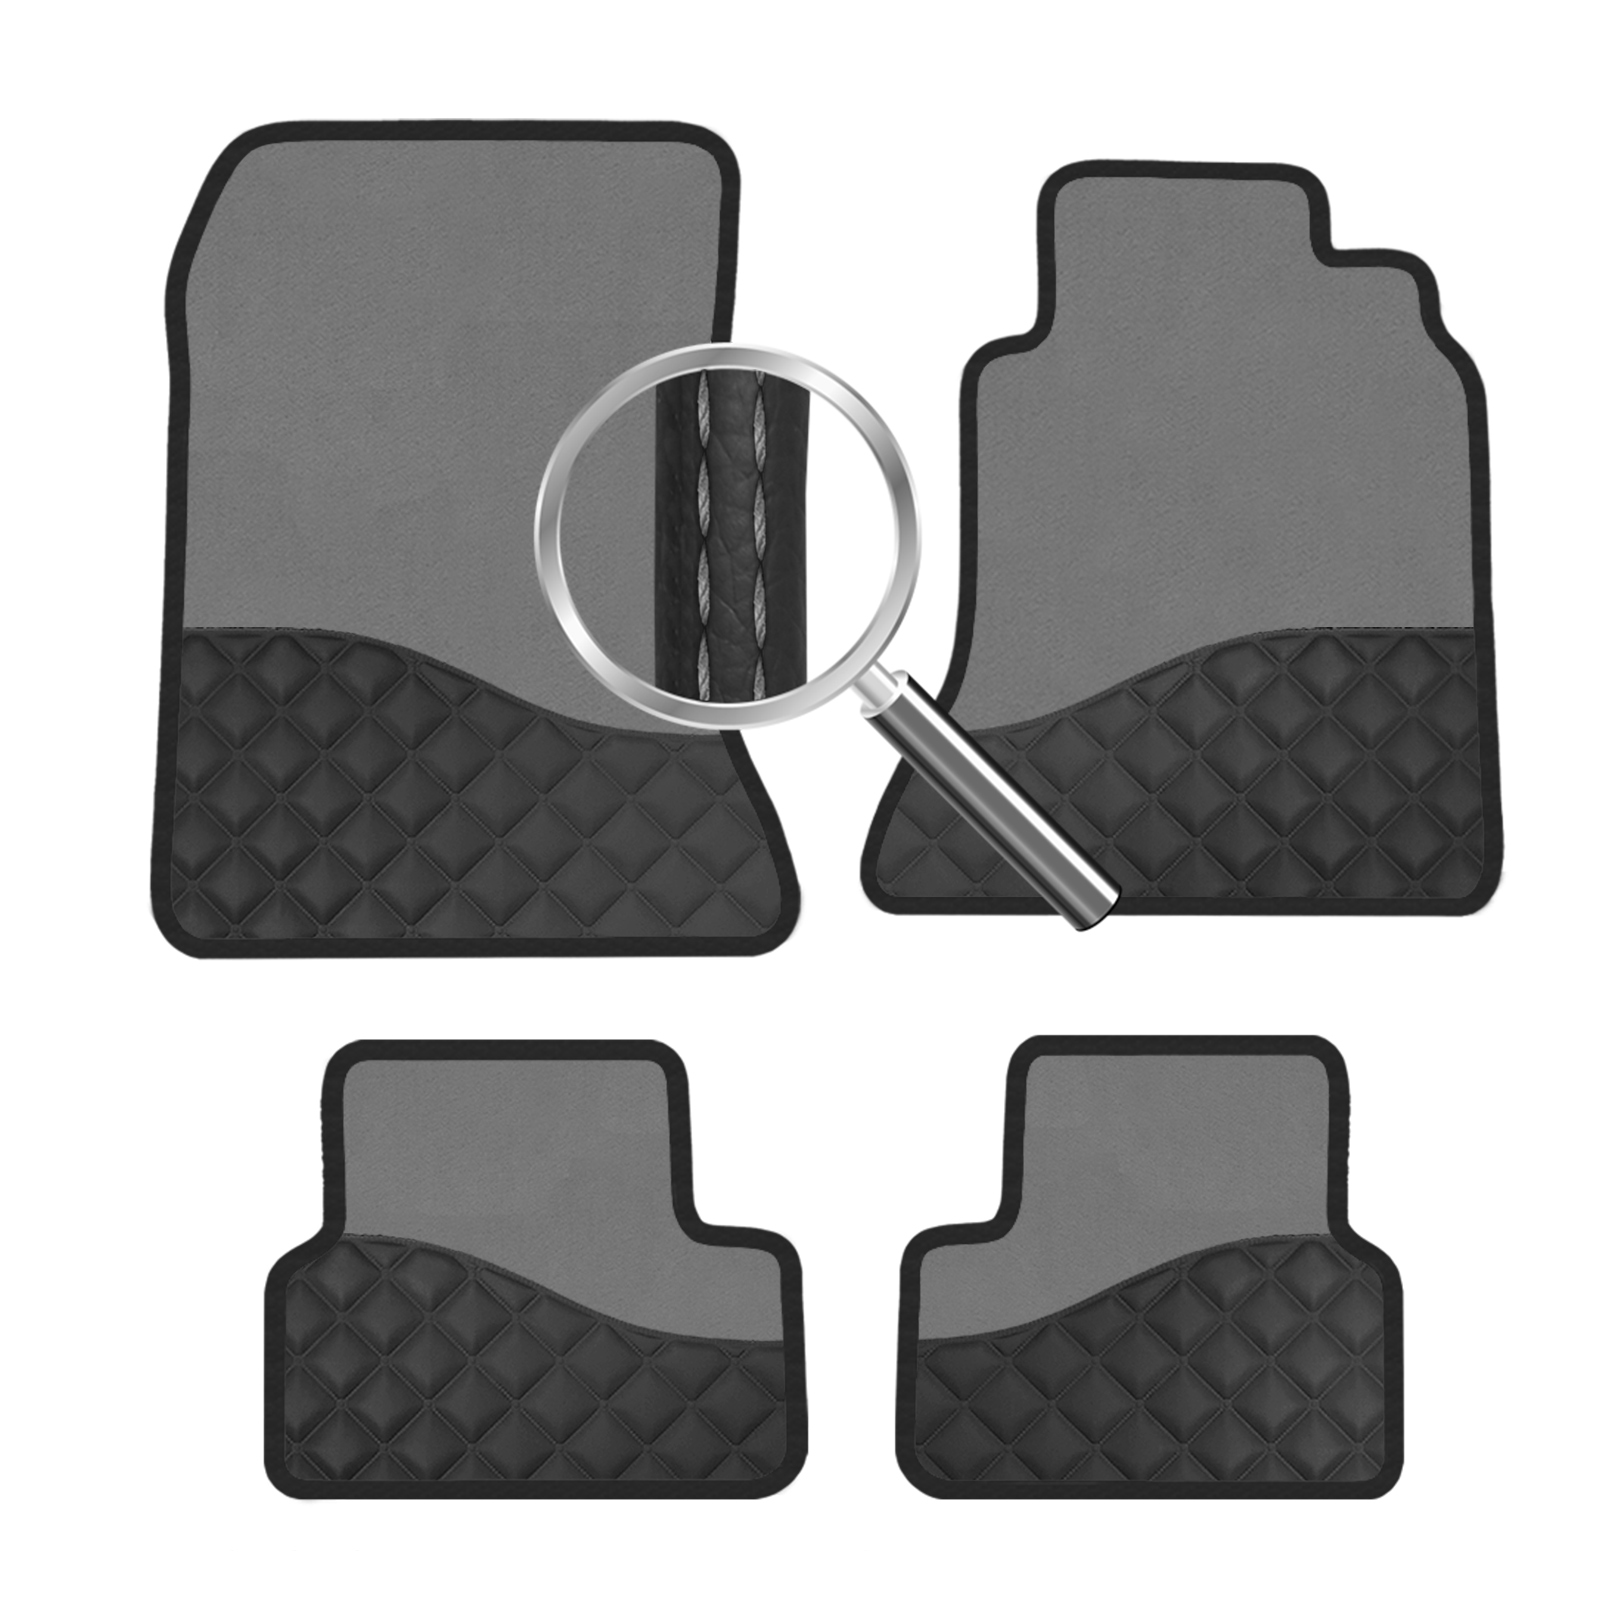 leather nx car es mats customizd carpet ls lexus rx is rugs for fit specially quality affiliate floor pin high